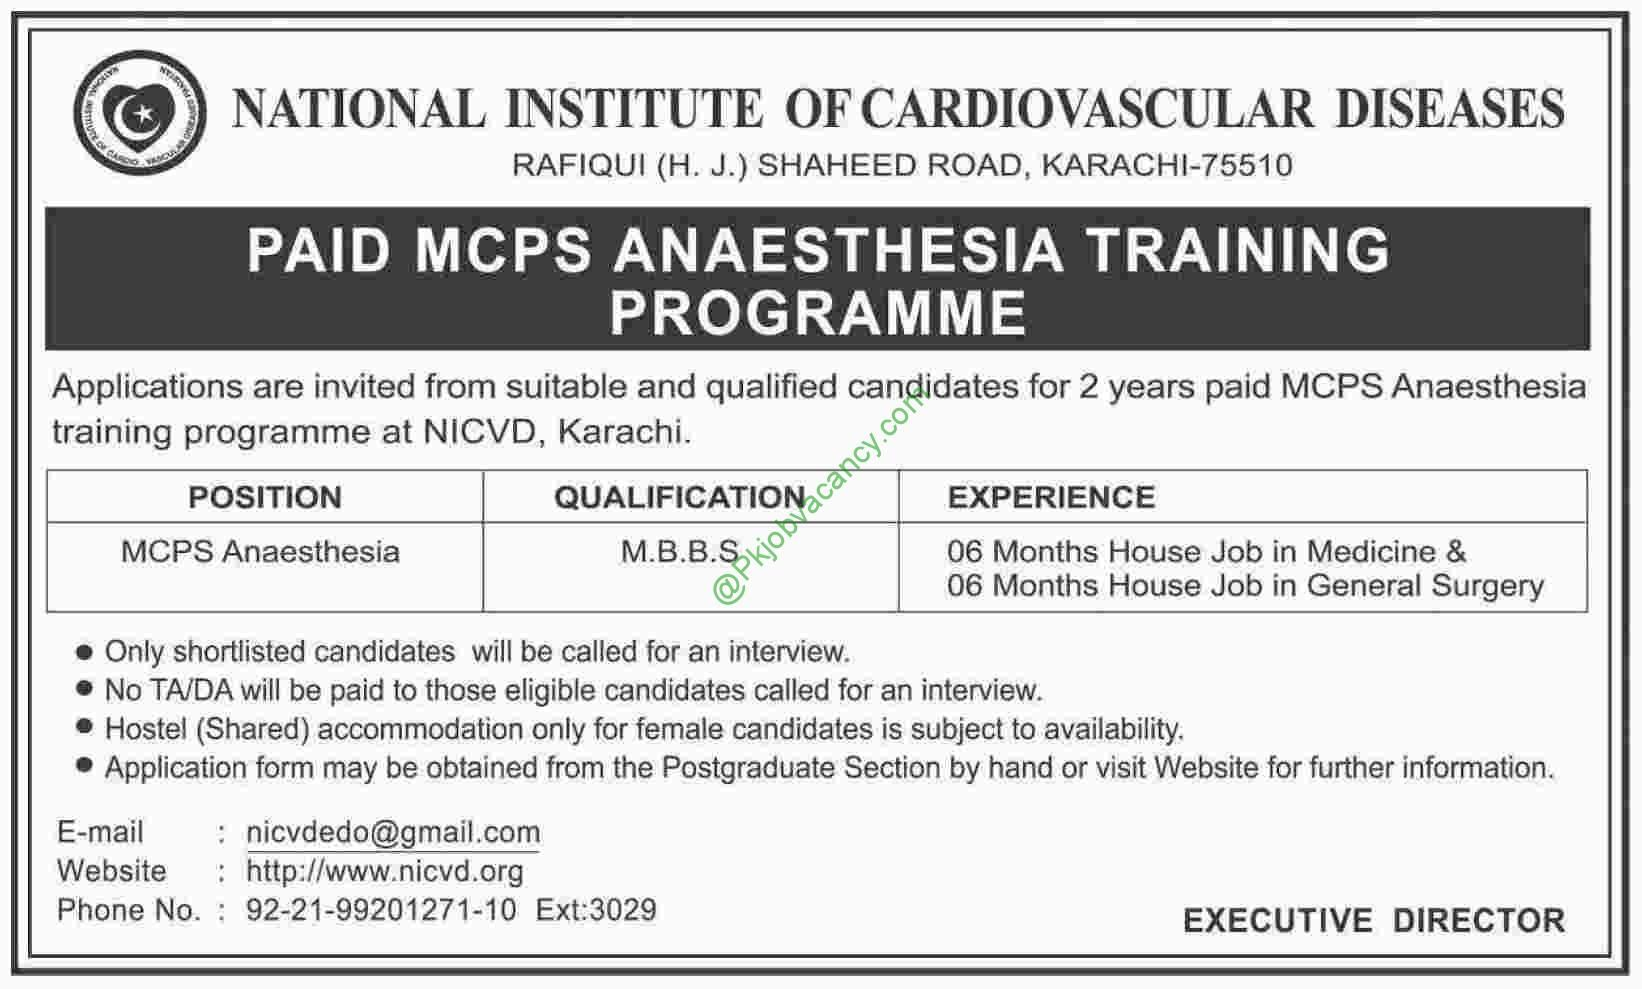 MCPS Training Program National Institute of Cardiovascular Diseases